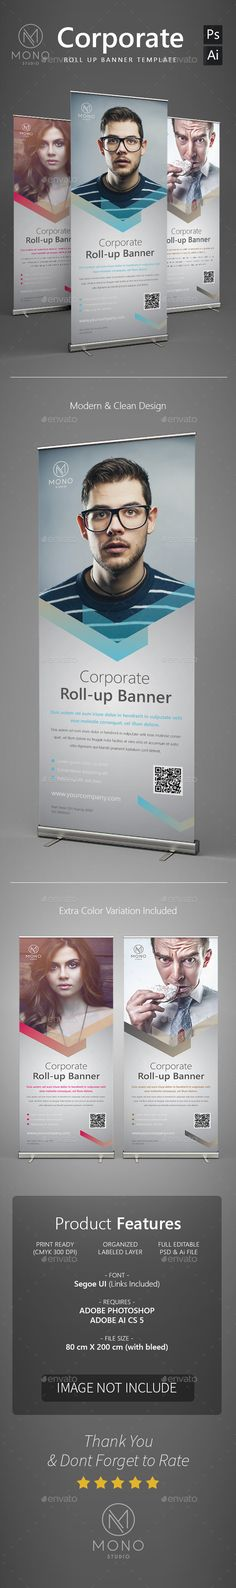 Corporate Roll Up Banner 2 — Photoshop PSD #clean #creative • Available here → https://graphicriver.net/item/corporate-roll-up-banner-2/14333777?ref=pxcr